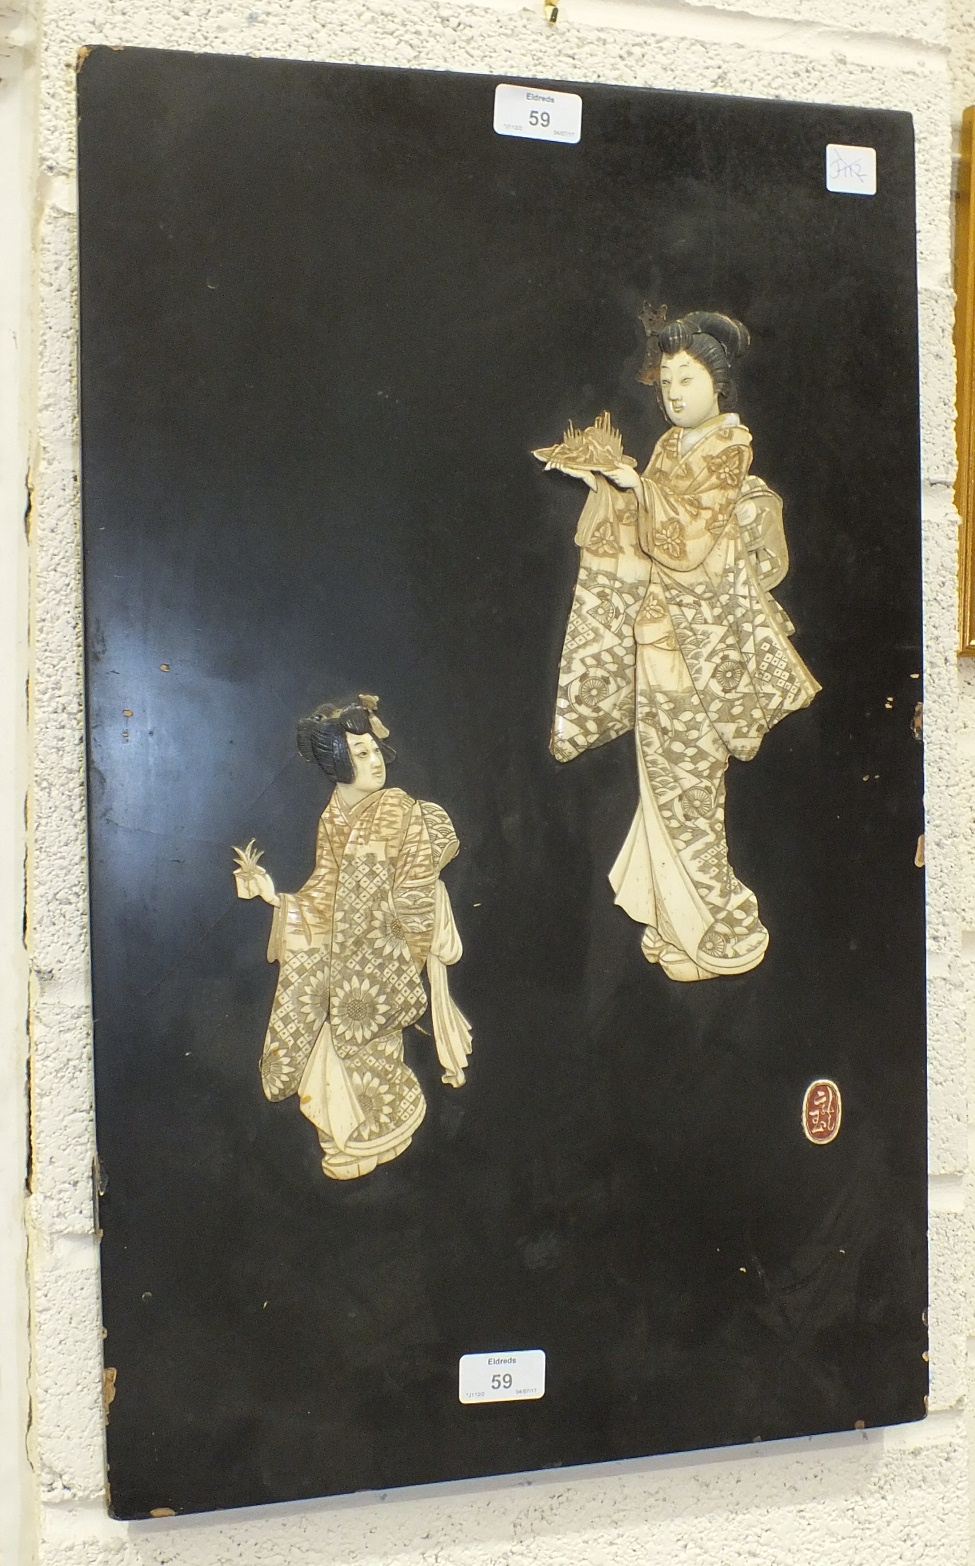 Lot 59 - A late-19th/early-20th century Japanese ivory and lacquered panel depicting two female figures,